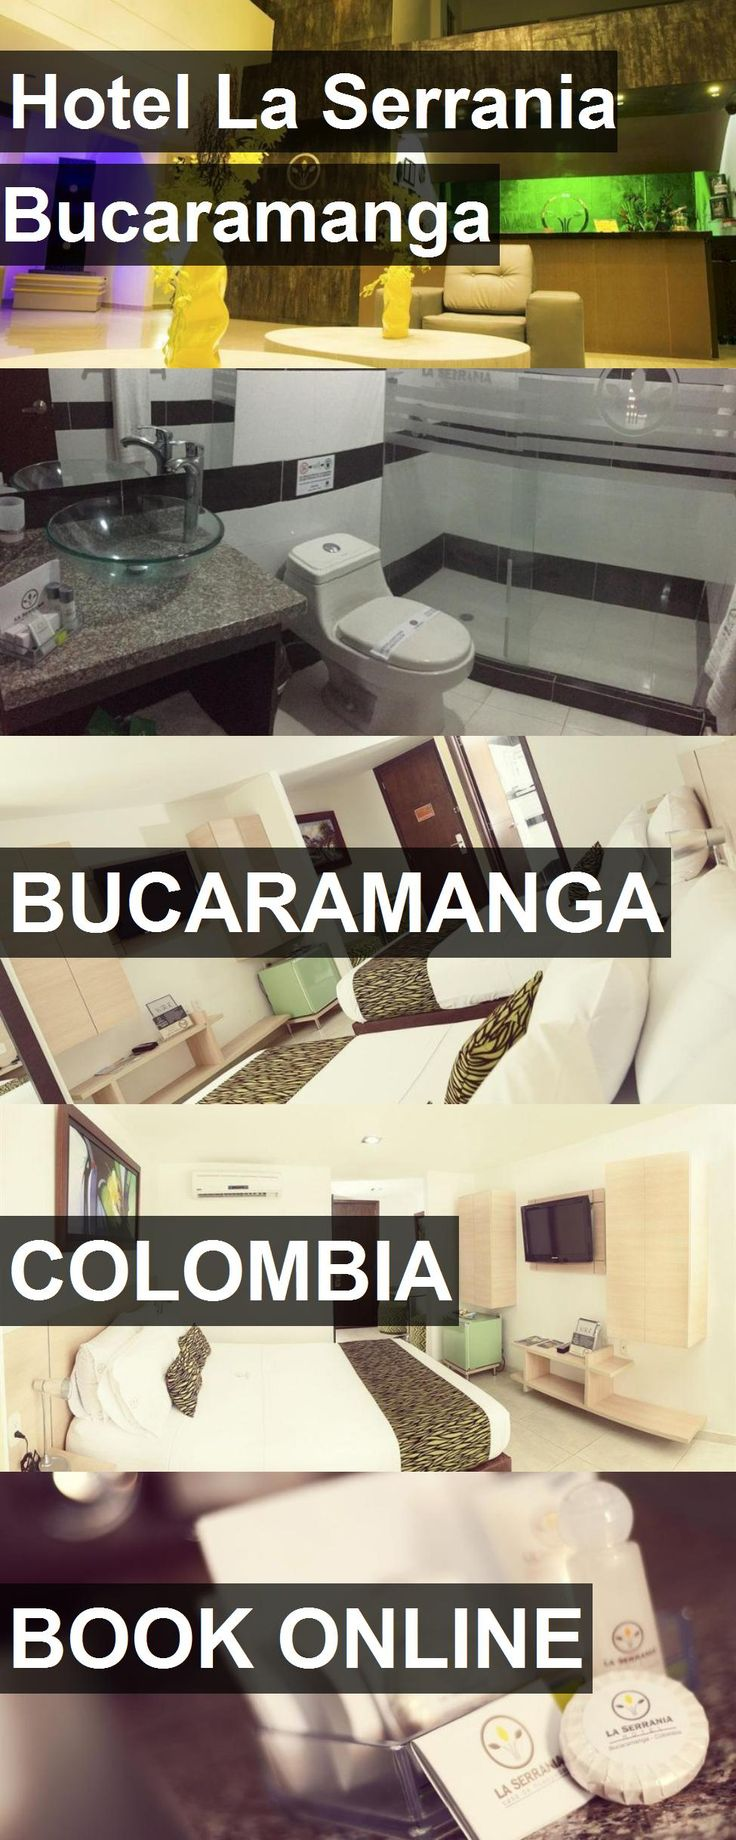 Hotel La Serrania Bucaramanga in Bucaramanga, Colombia. For more information, photos, reviews and best prices please follow the link. #Colombia #Bucaramanga #travel #vacation #hotel